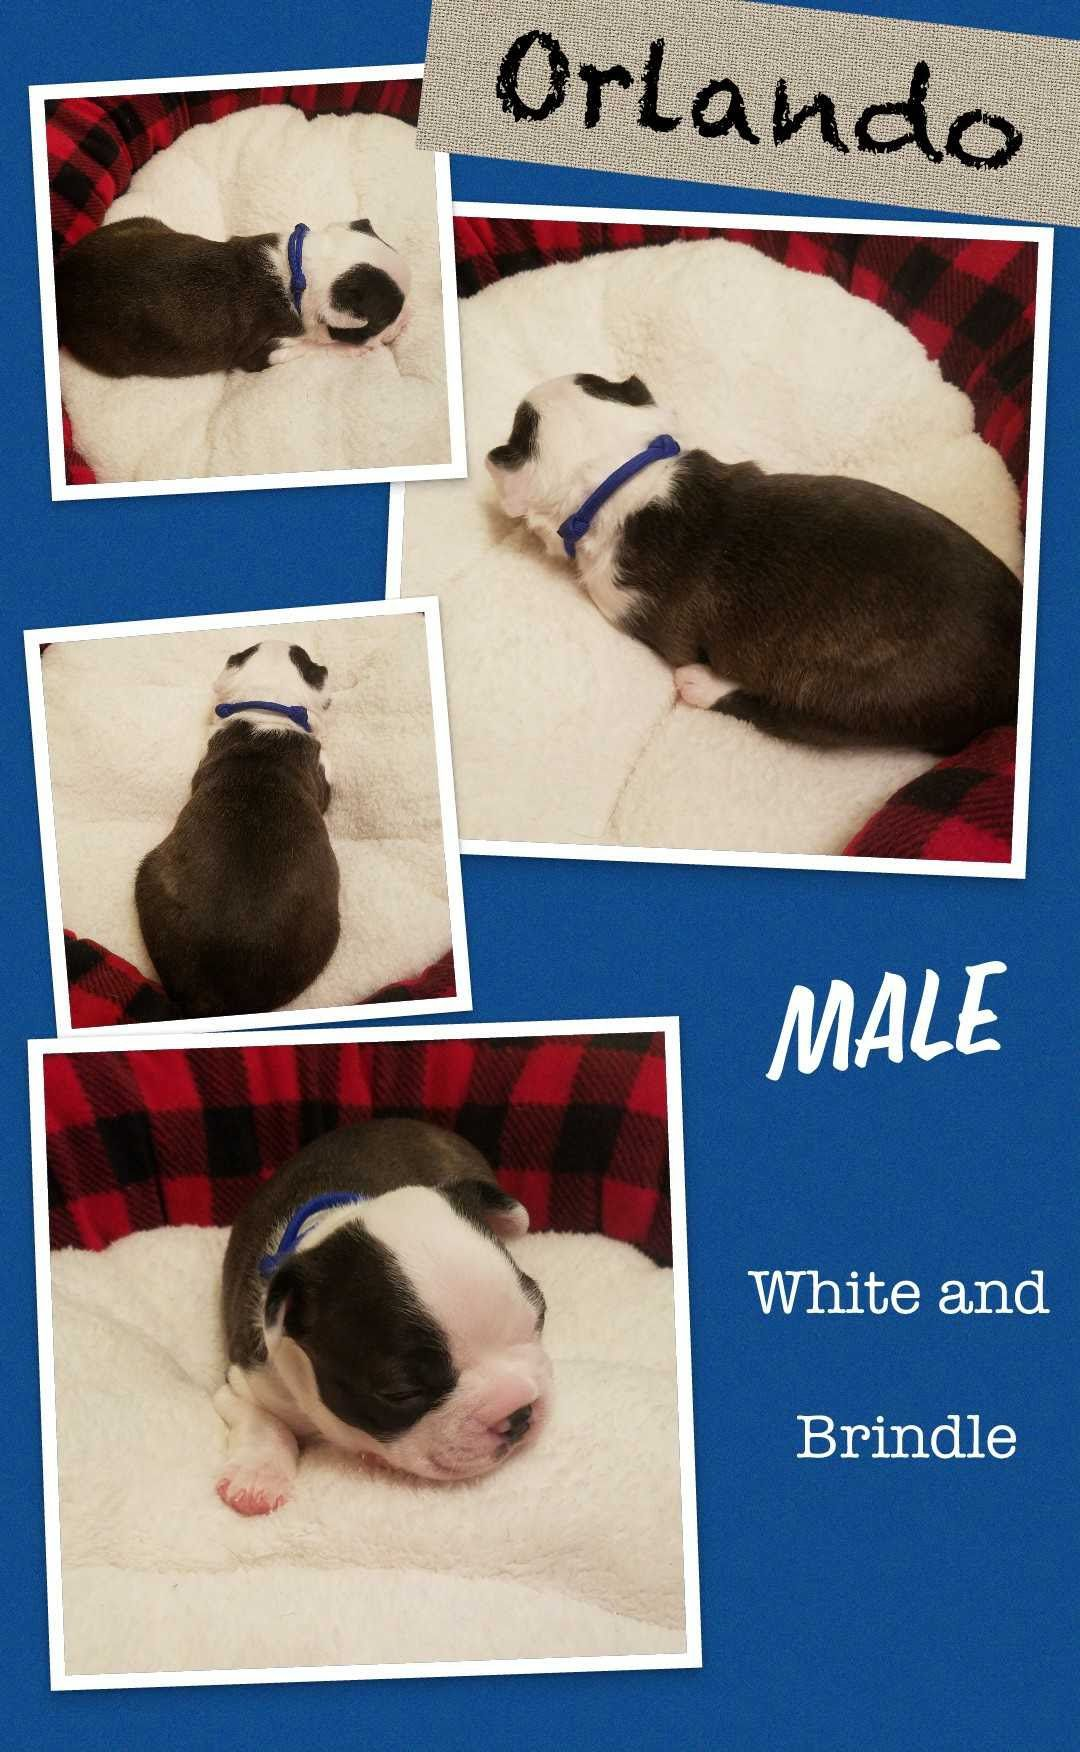 AKC Registered Boston Terrier Puppies image 1